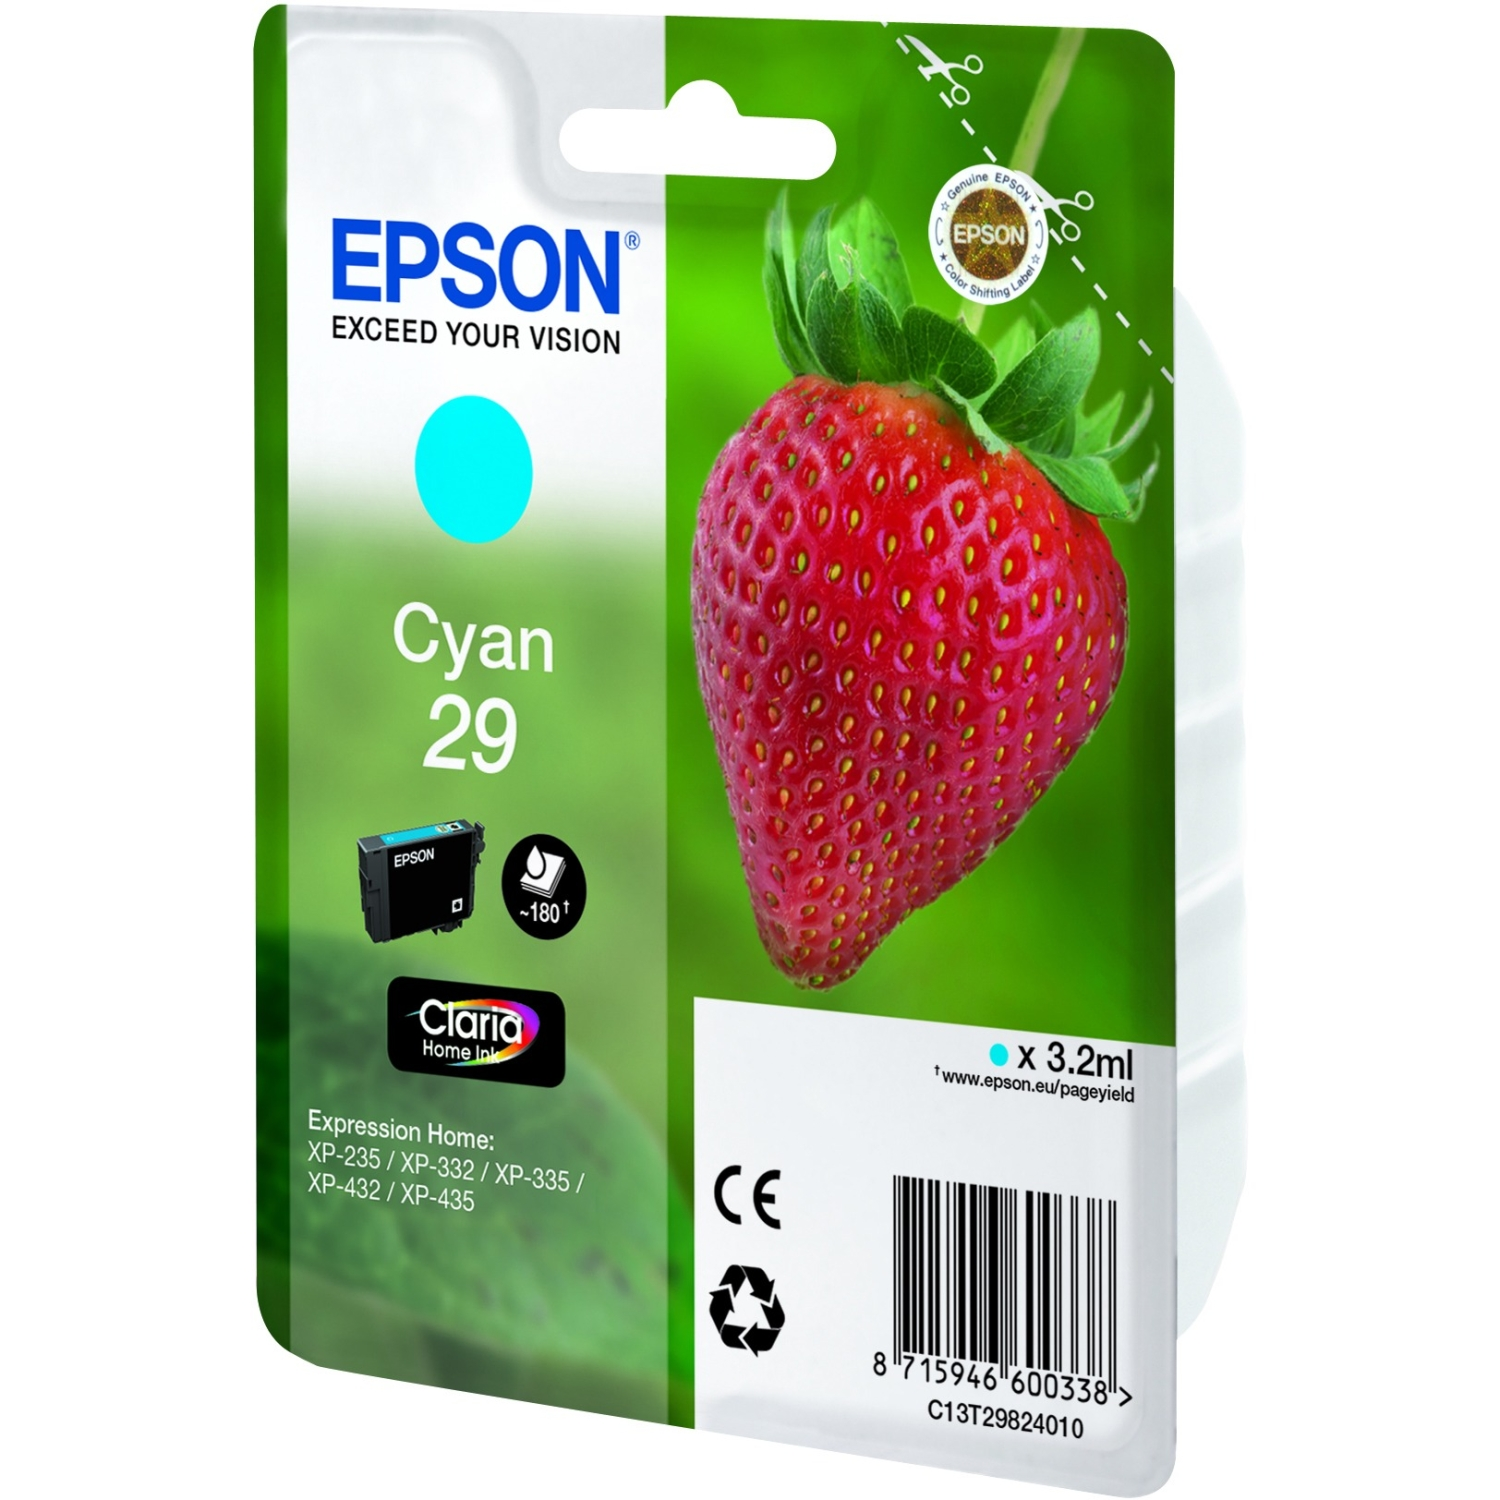 Genuine Cyan Epson 29 Ink Cartridge - (T2982 Strawberry Inkjet Printer Cartridge)